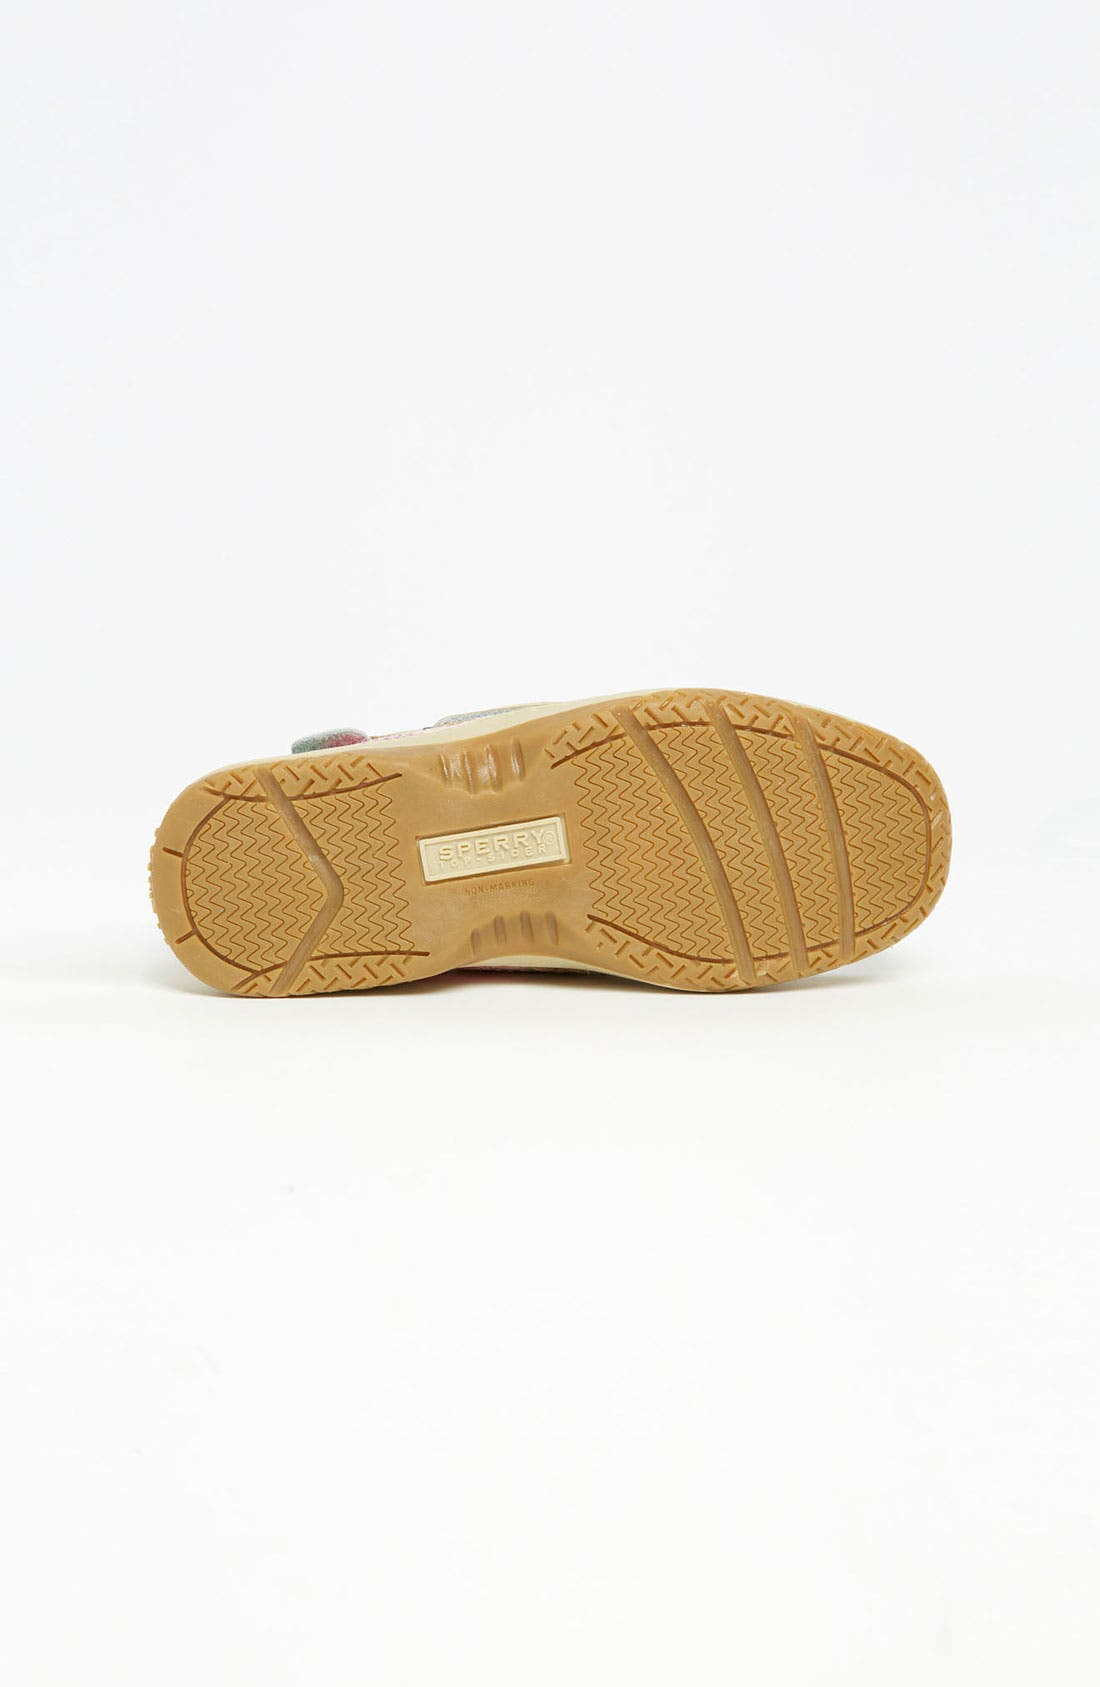 Sperry Top-Sider<sup>®</sup> 'Bluefish' Boat Shoe,                             Alternate thumbnail 2, color,